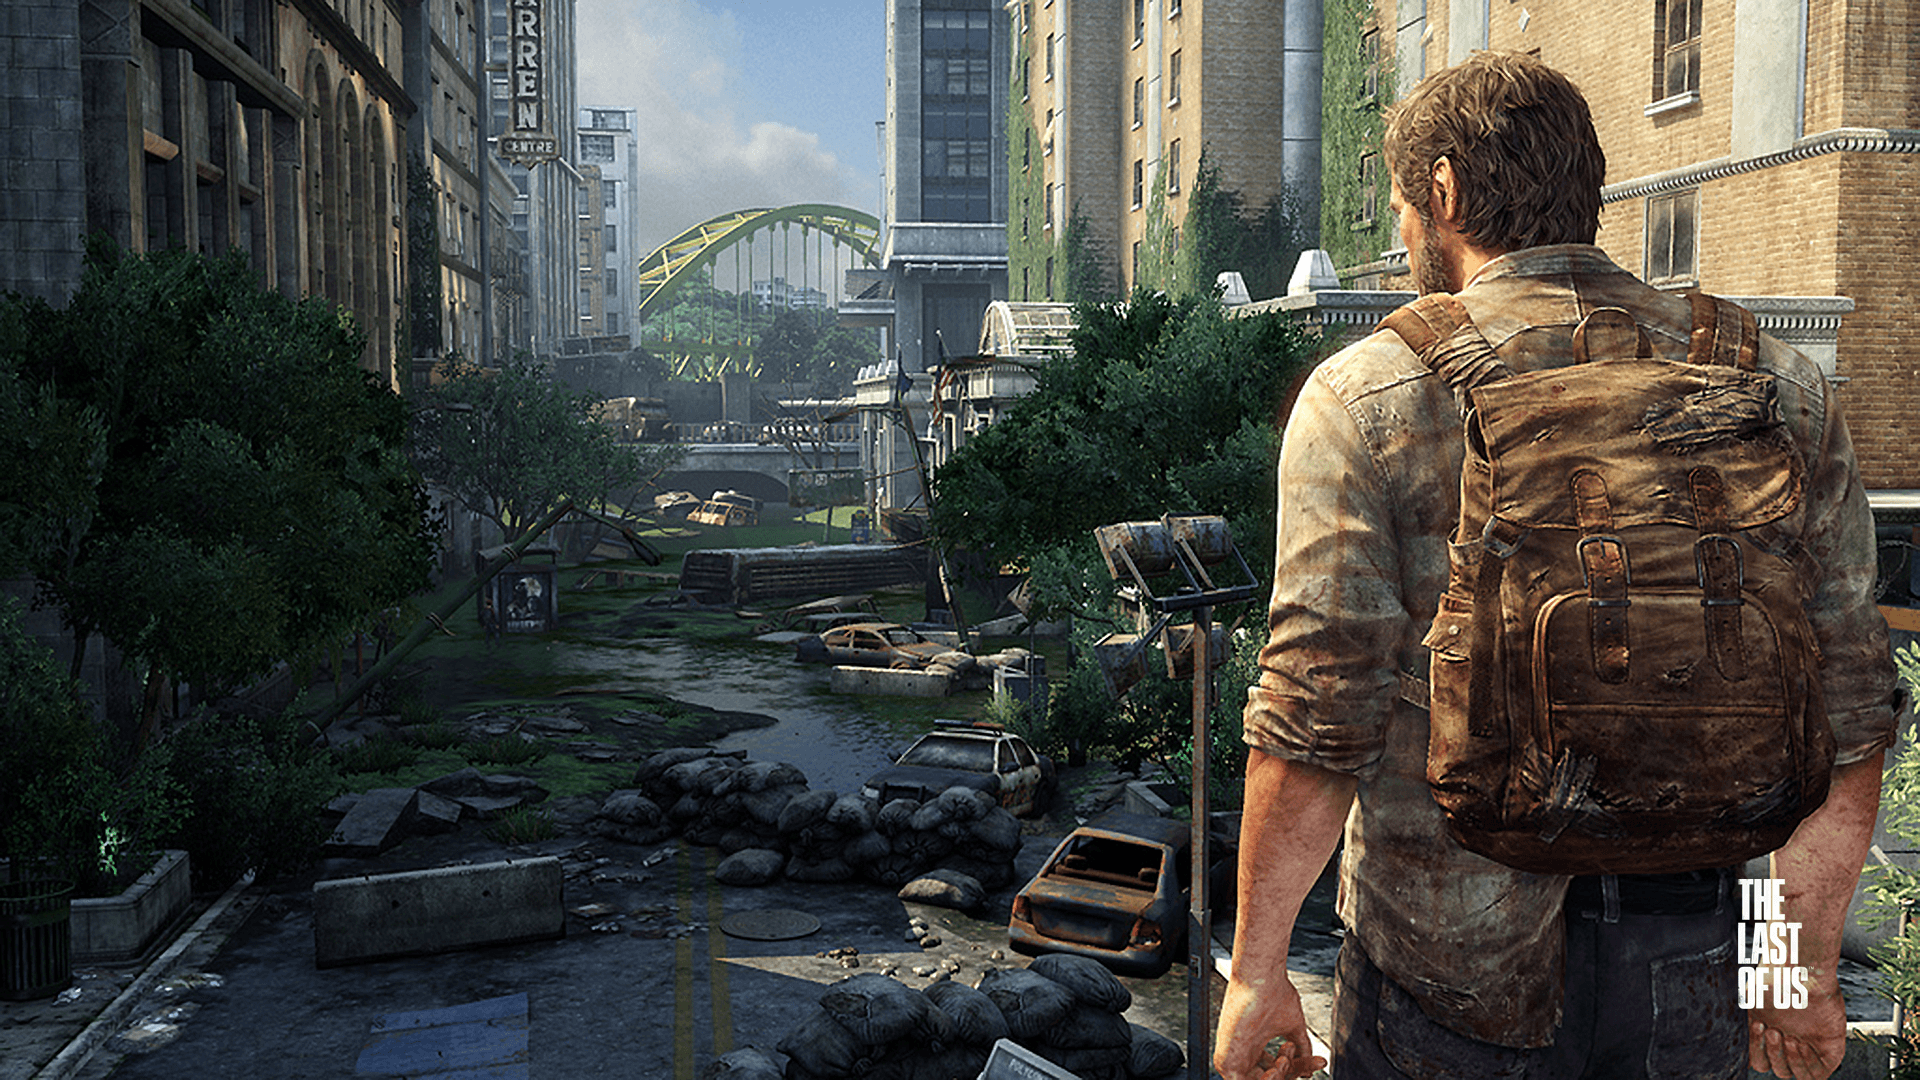 The Best Of The Last Of Us Wallpapers 1920x1080